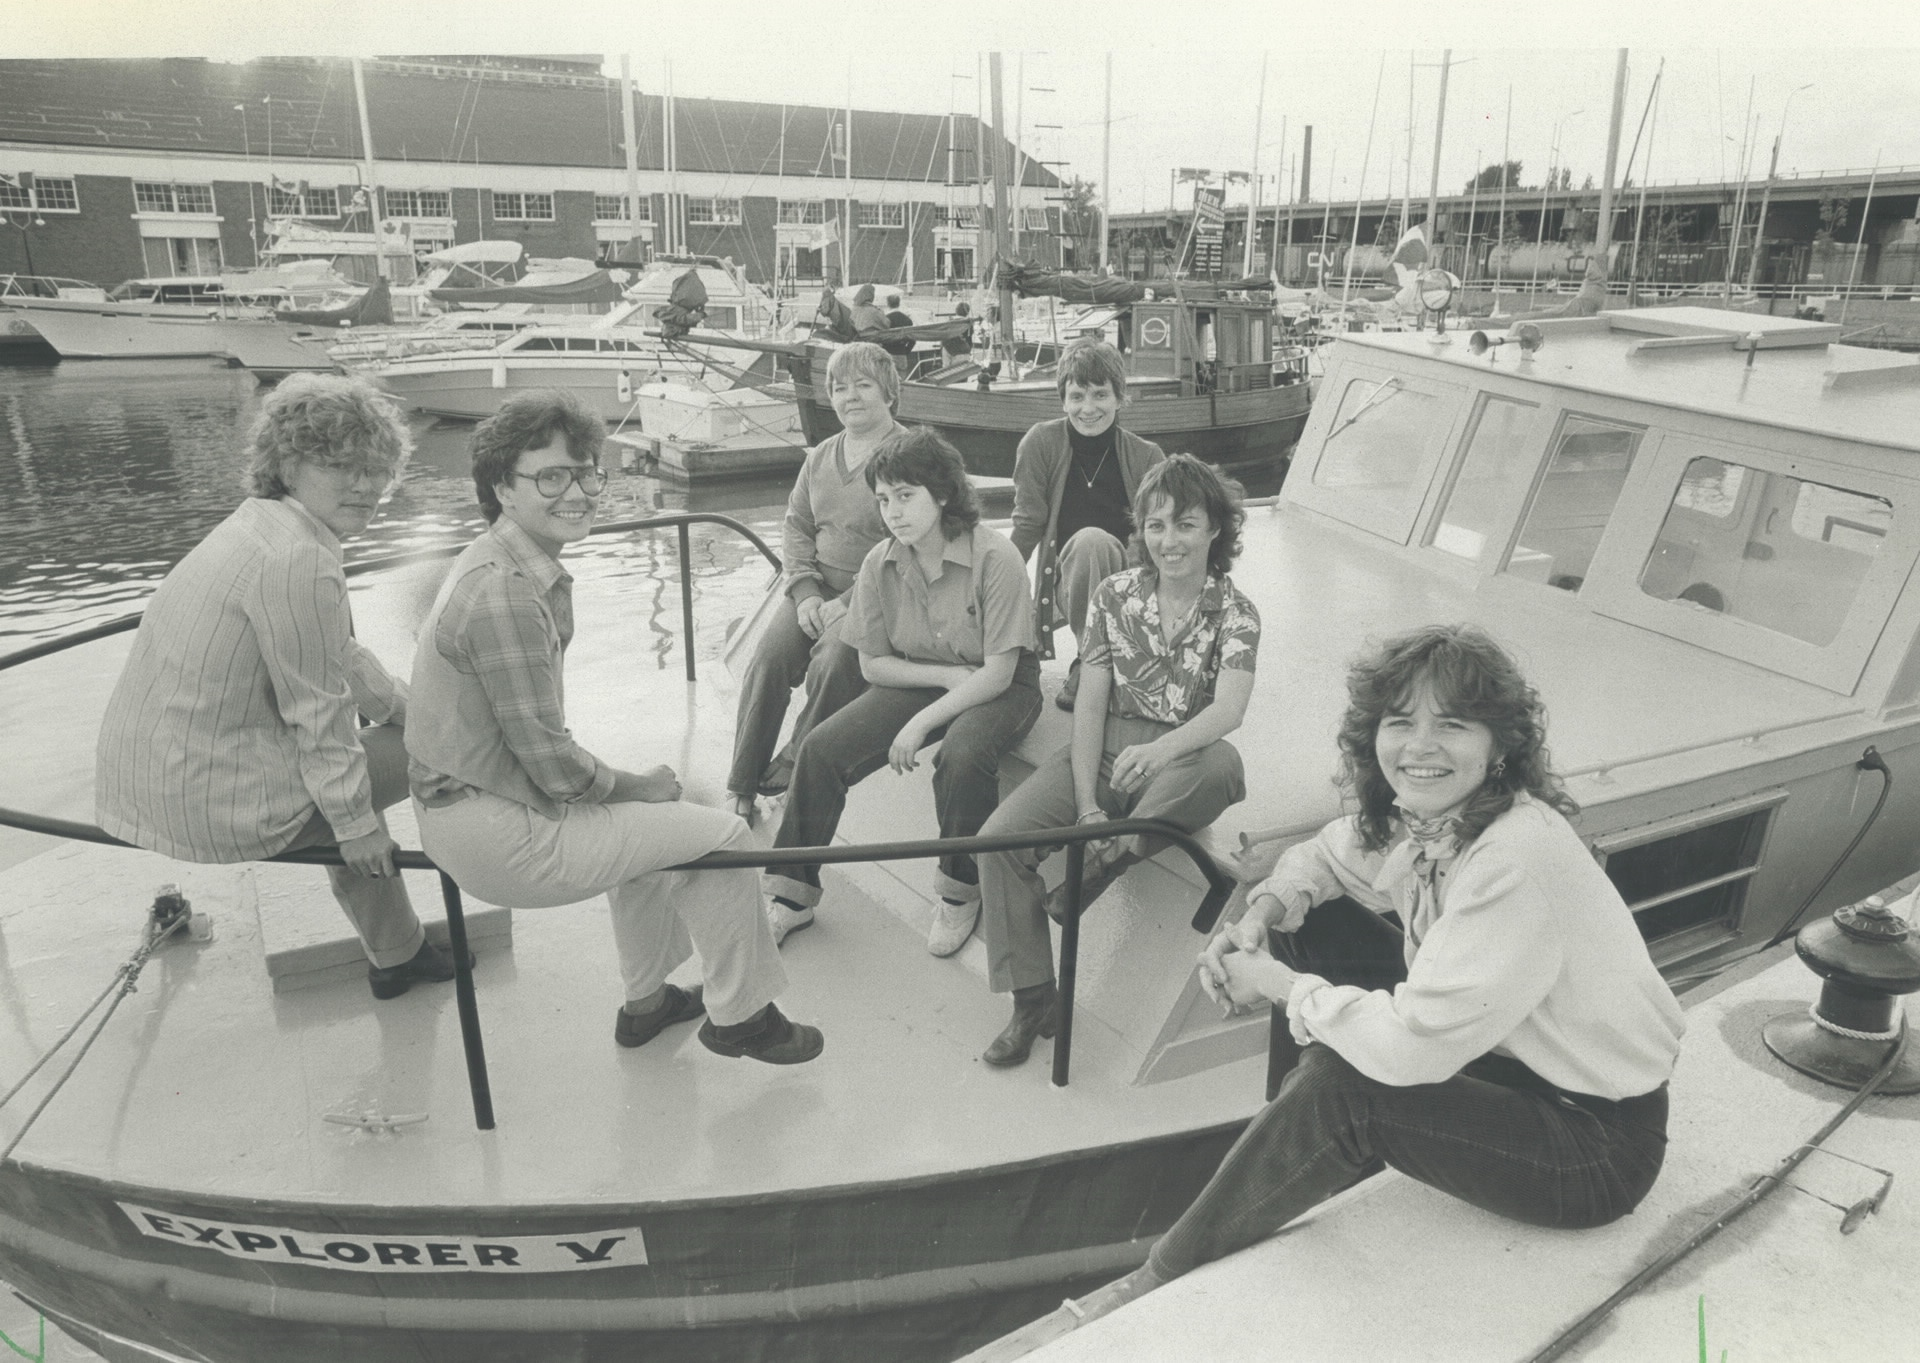 Six people sit on a boat that is moored in the Toronto harbour, with Lorraine Segato sitting in the foreground on the dock next to the boat.